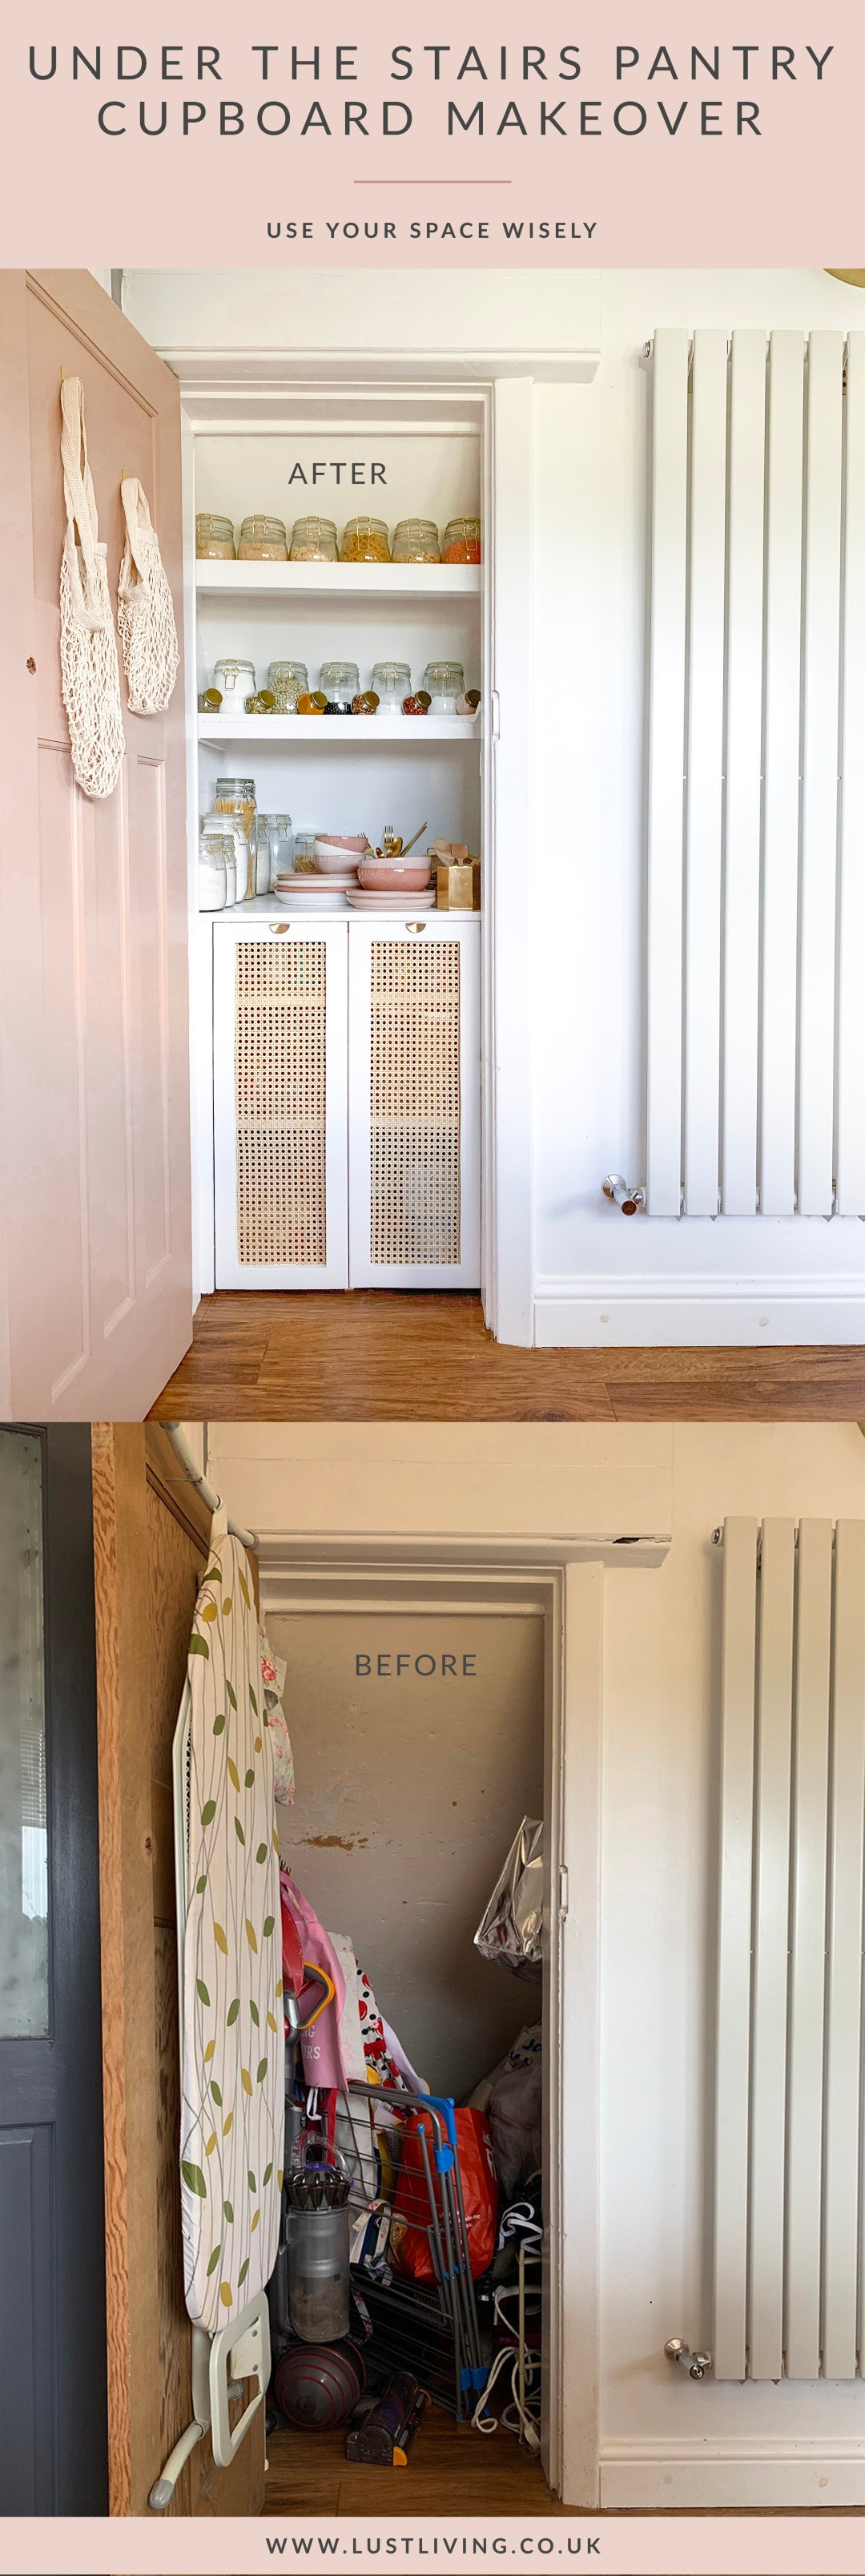 Under the Stairs Pantry Cupboard DIY Makeover Before & After